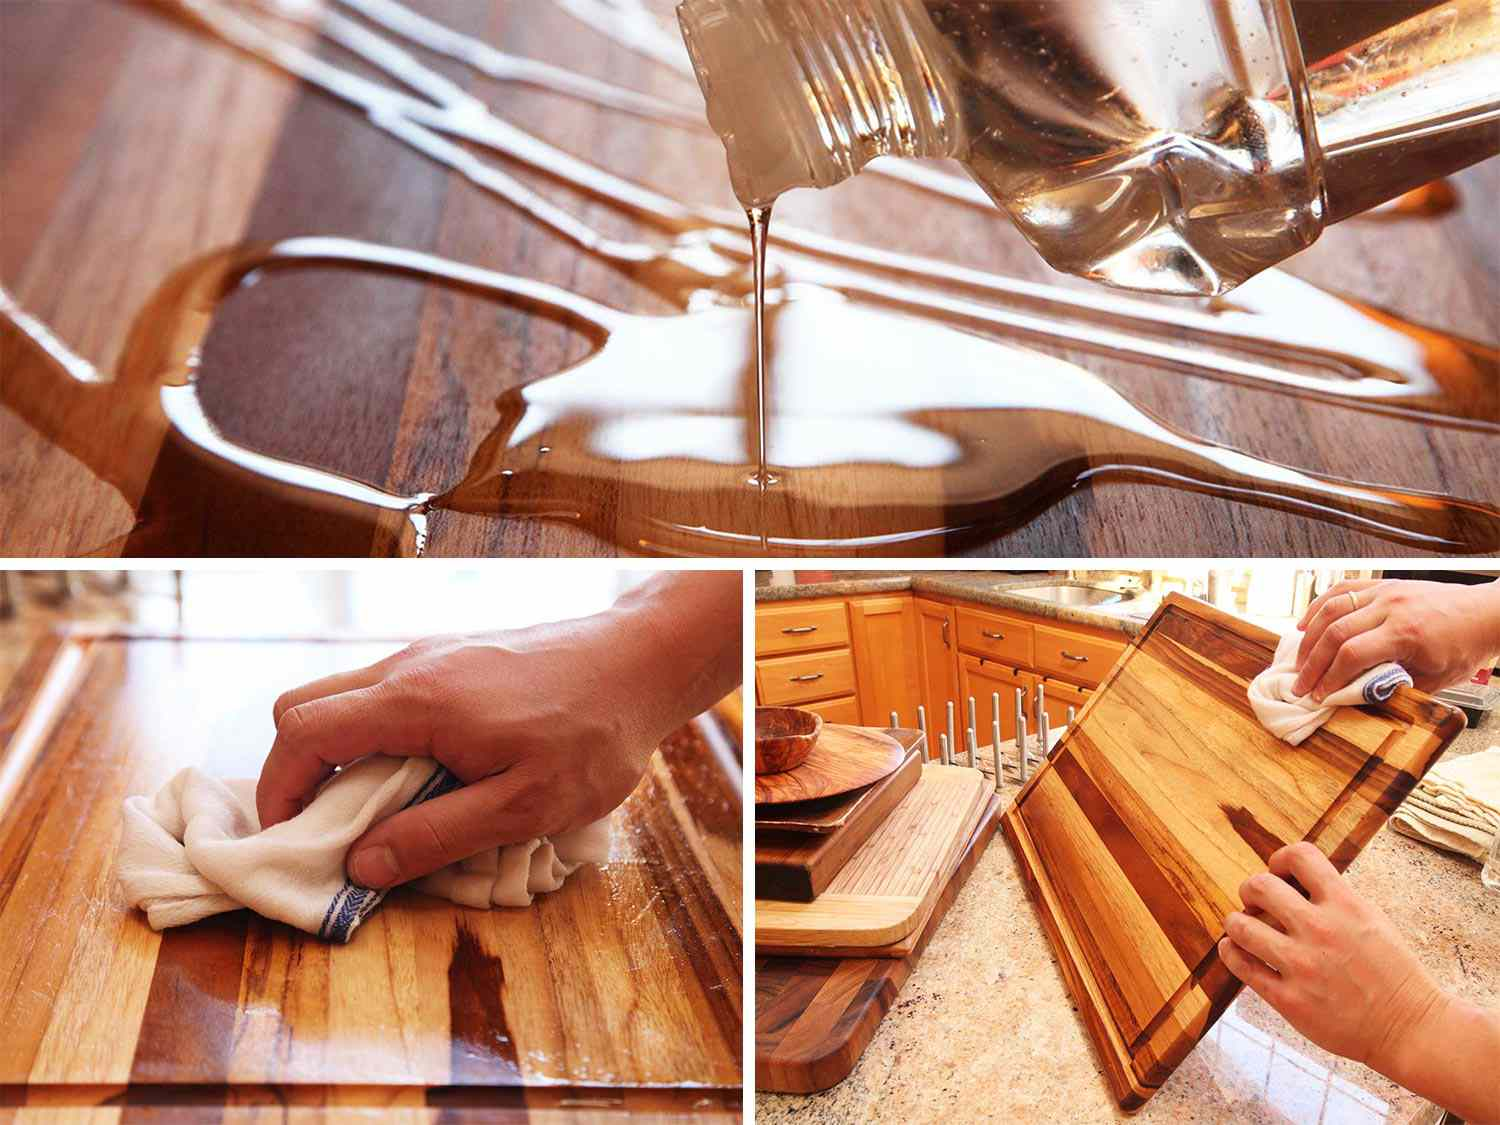 20150824-wooden-cutting-board-how-to-maintain-composite-kenji-8.jpg